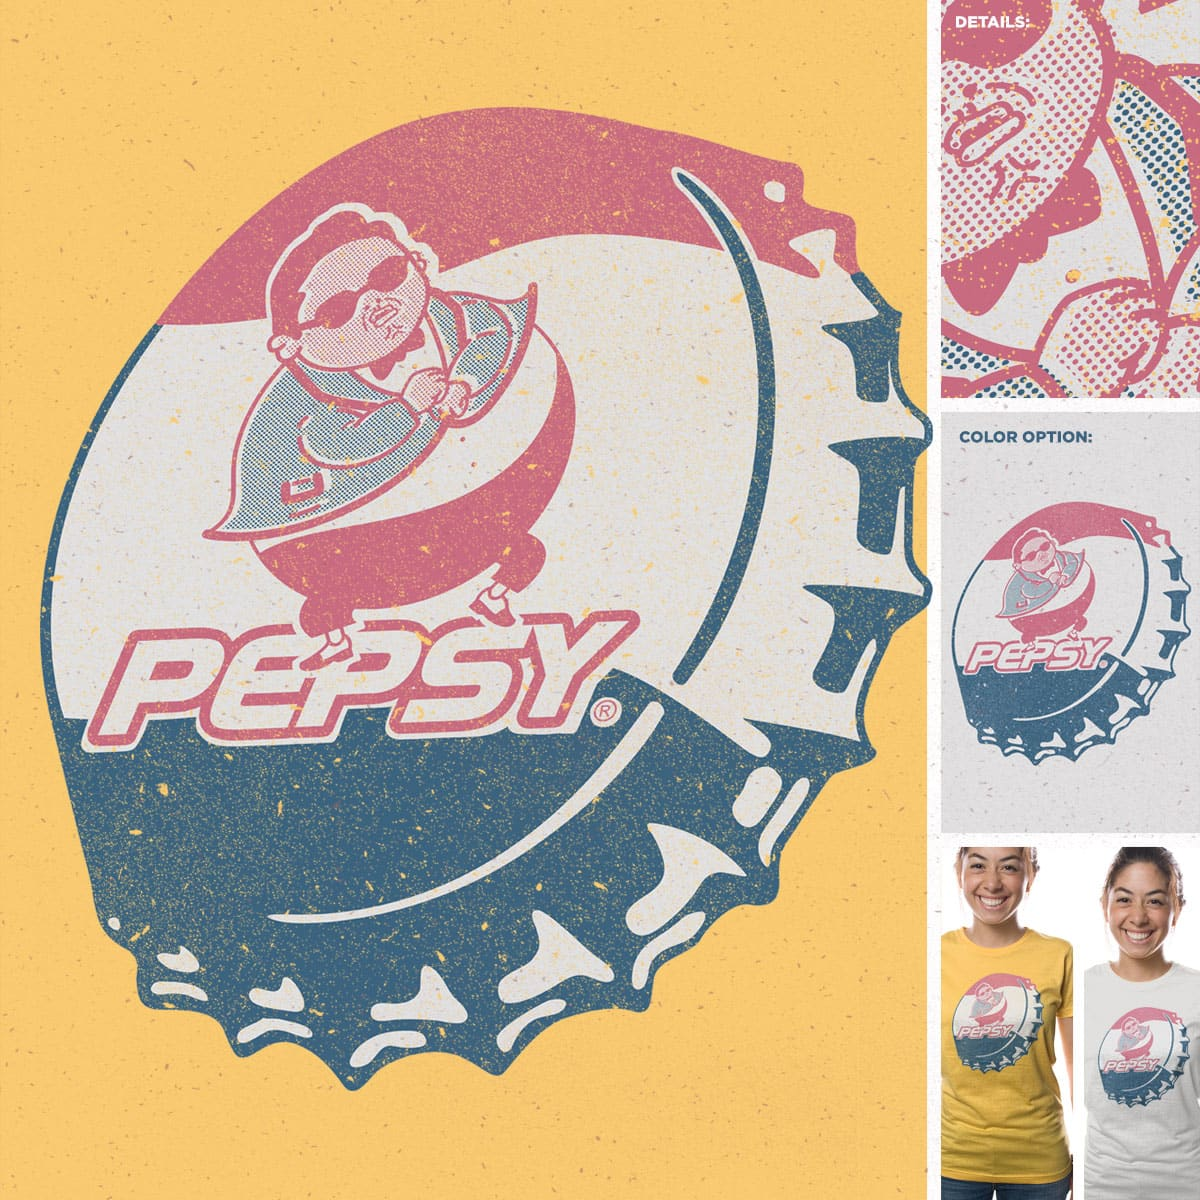 Pepsy by vo maria on Threadless